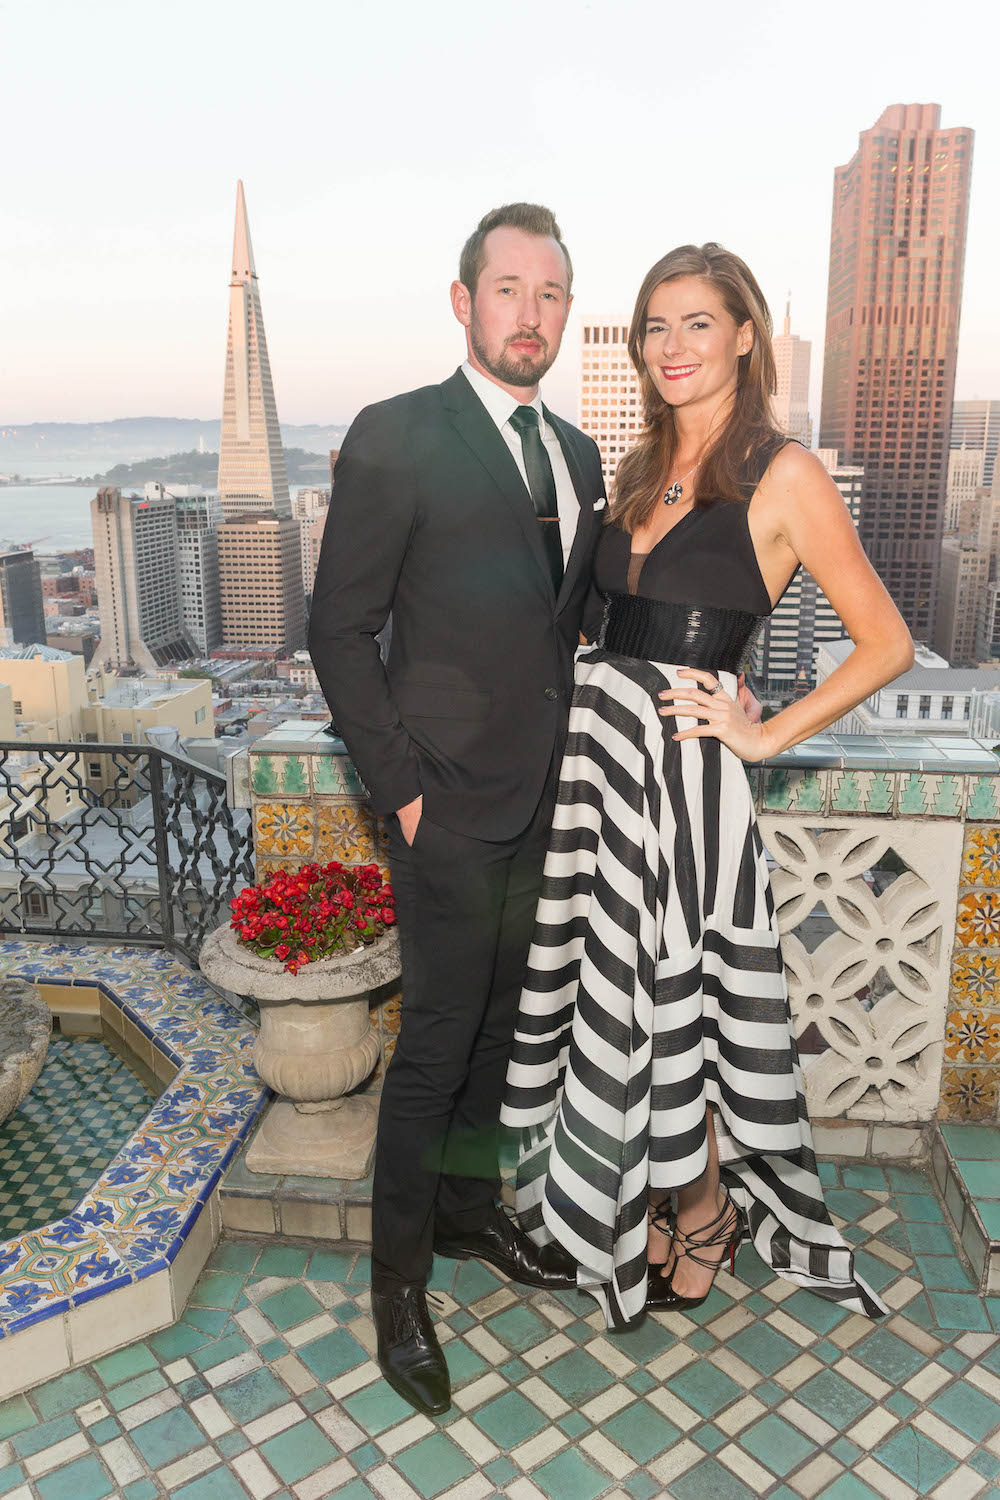 Iann Warmouth and Monika Sola attend UCSF Soirée at the Penthouse Suite at the Fairmont Hotel